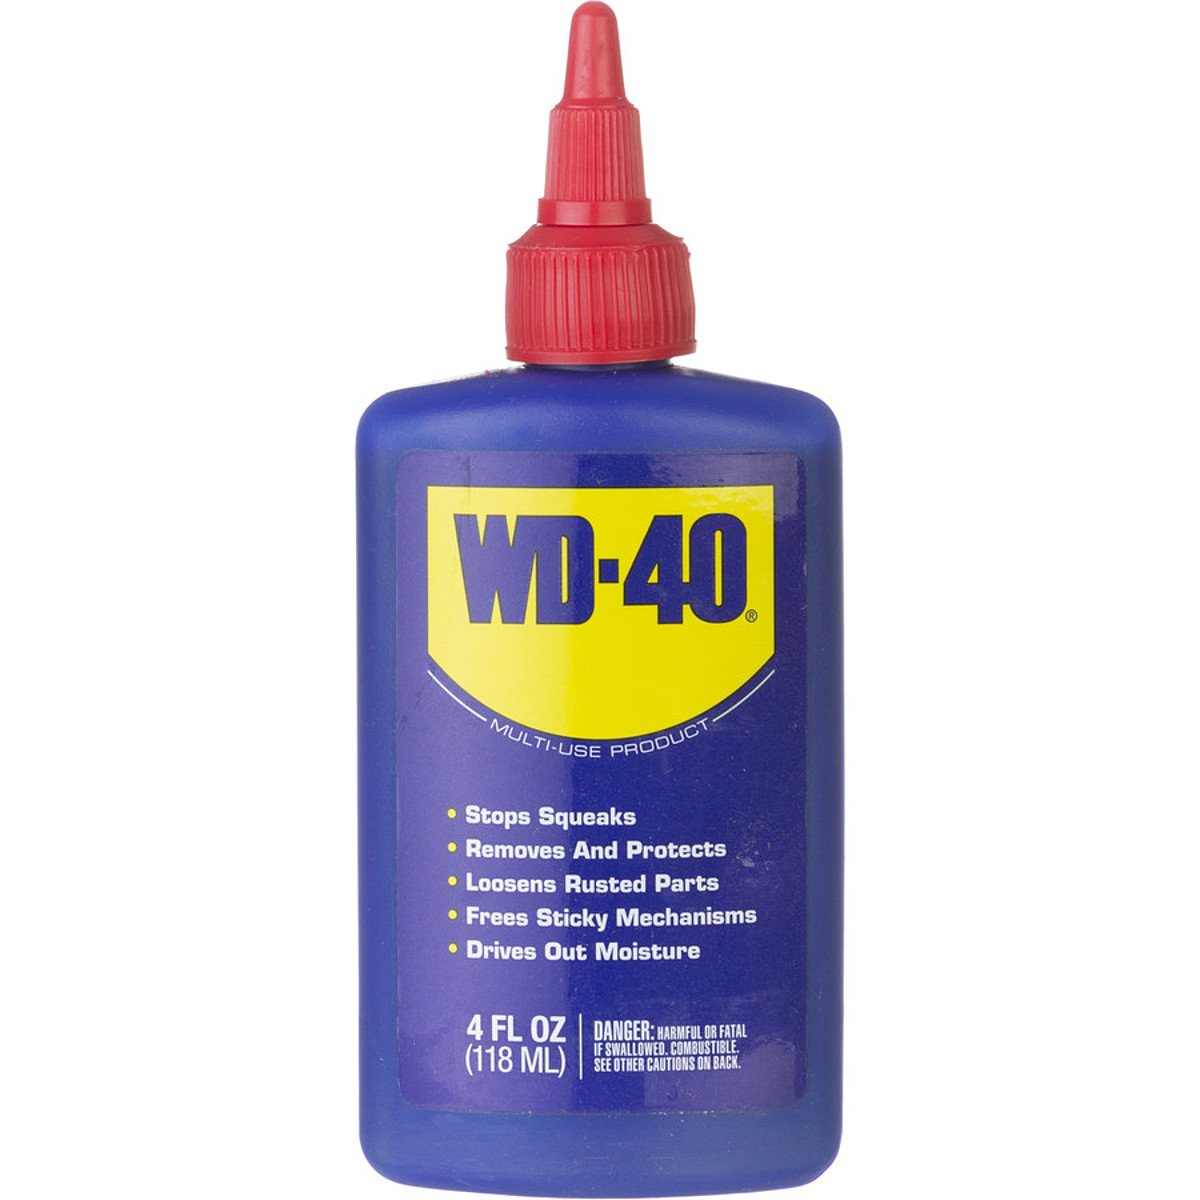 WD-40 Bike Multi-Use Product Drip Lube, 4-Ounce 39005